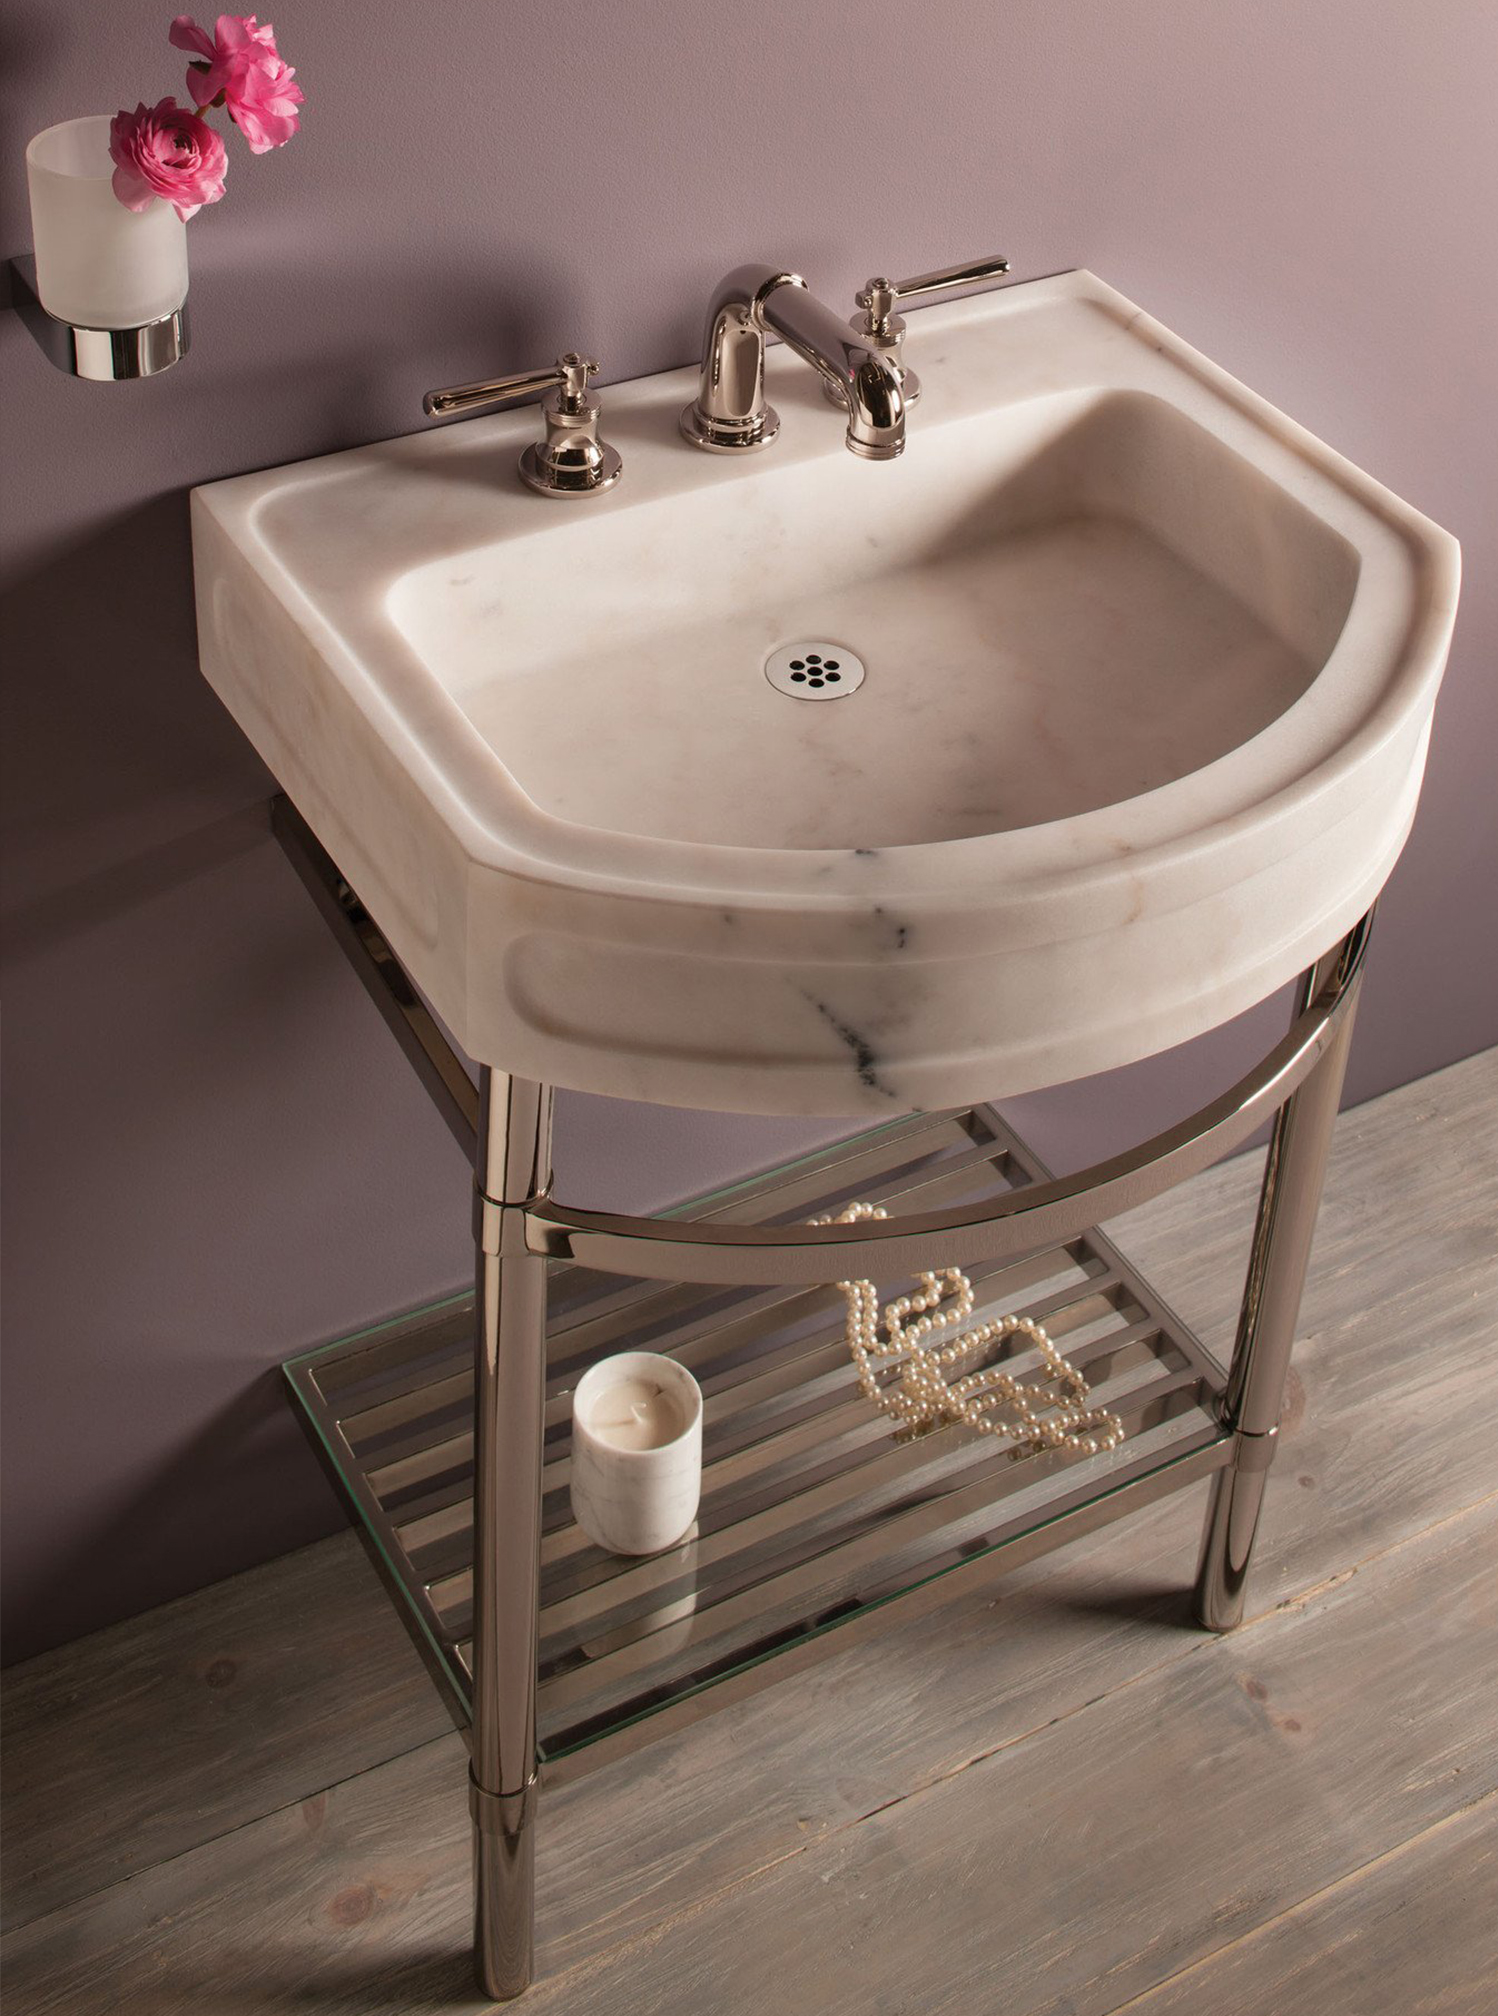 """The 24"""" wide Harbor washbasin has a curved front profile on a polished nickel stand with a shelf."""